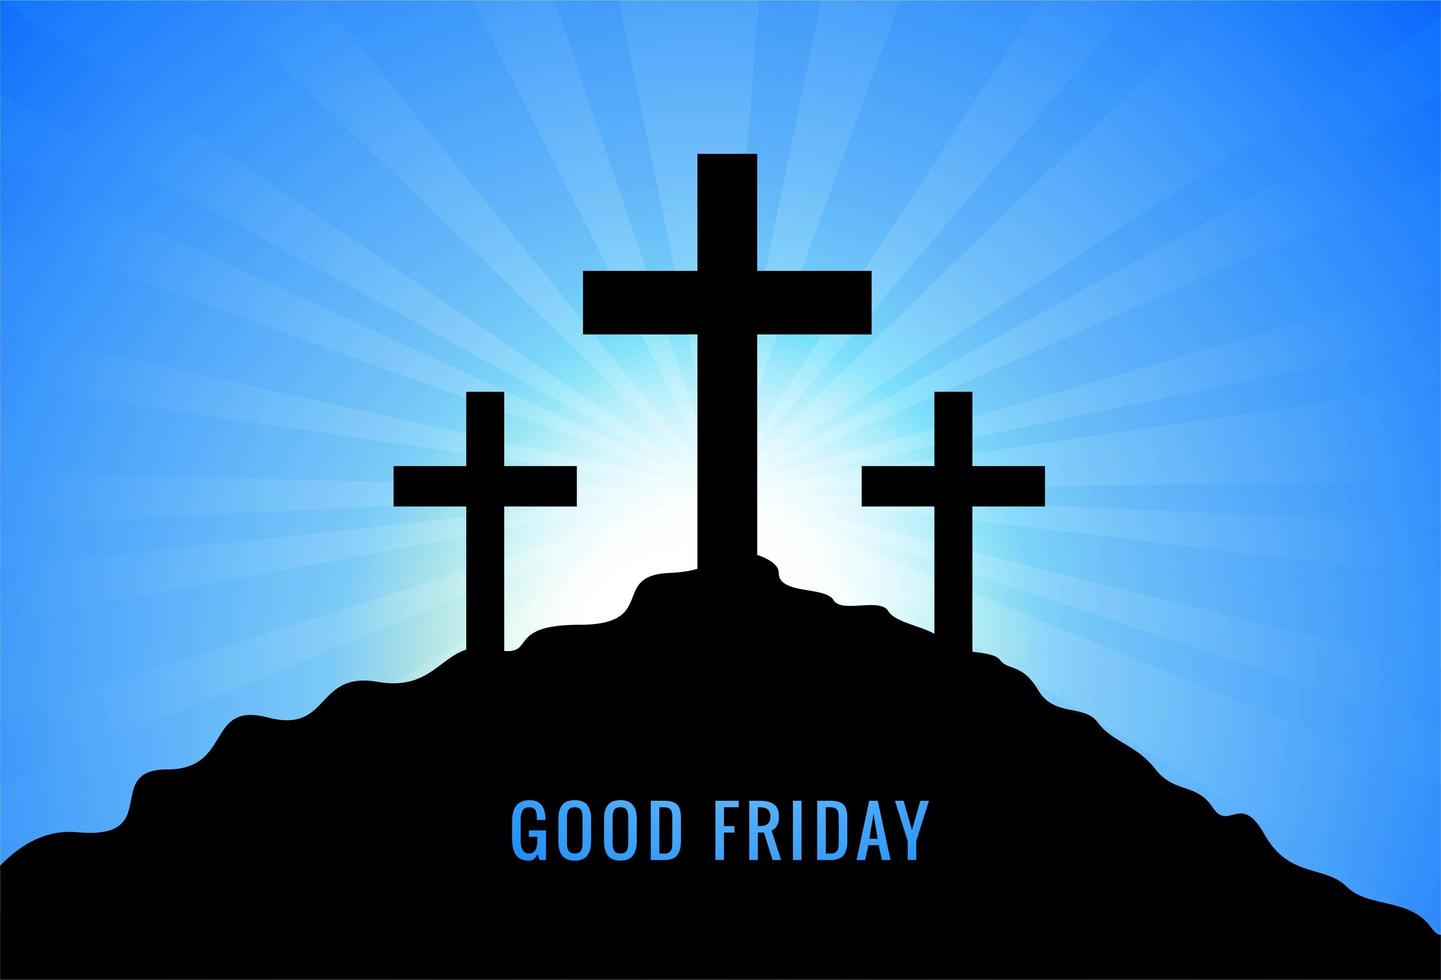 Greeting for Good Friday with Three Crosses Sunset Background vector